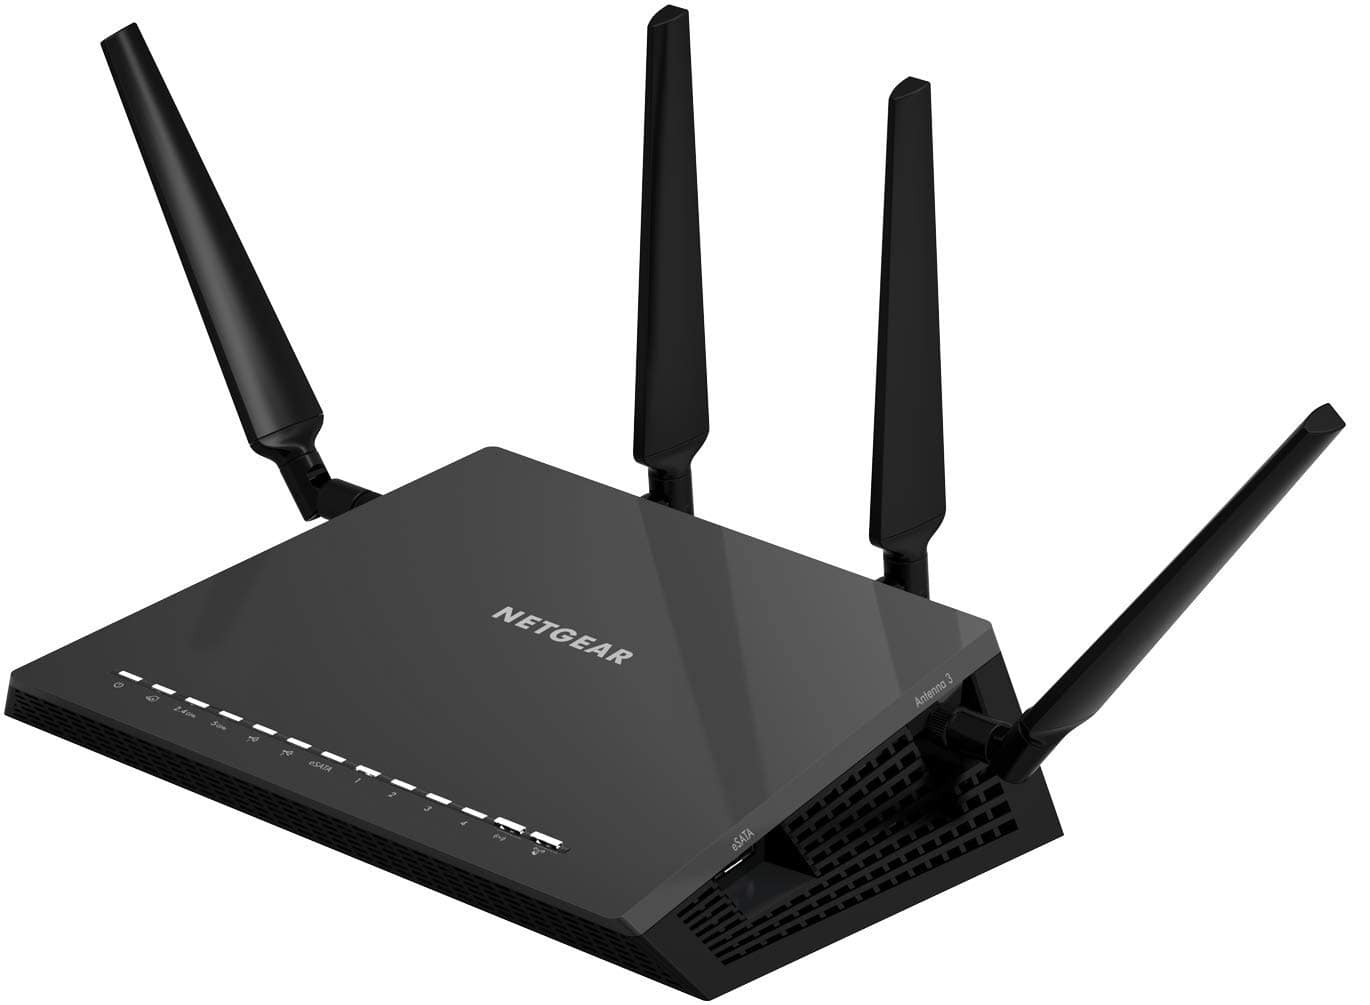 Netgear Nighthawk X4S AC2600 4x4 Dual-Band Gigabit Router